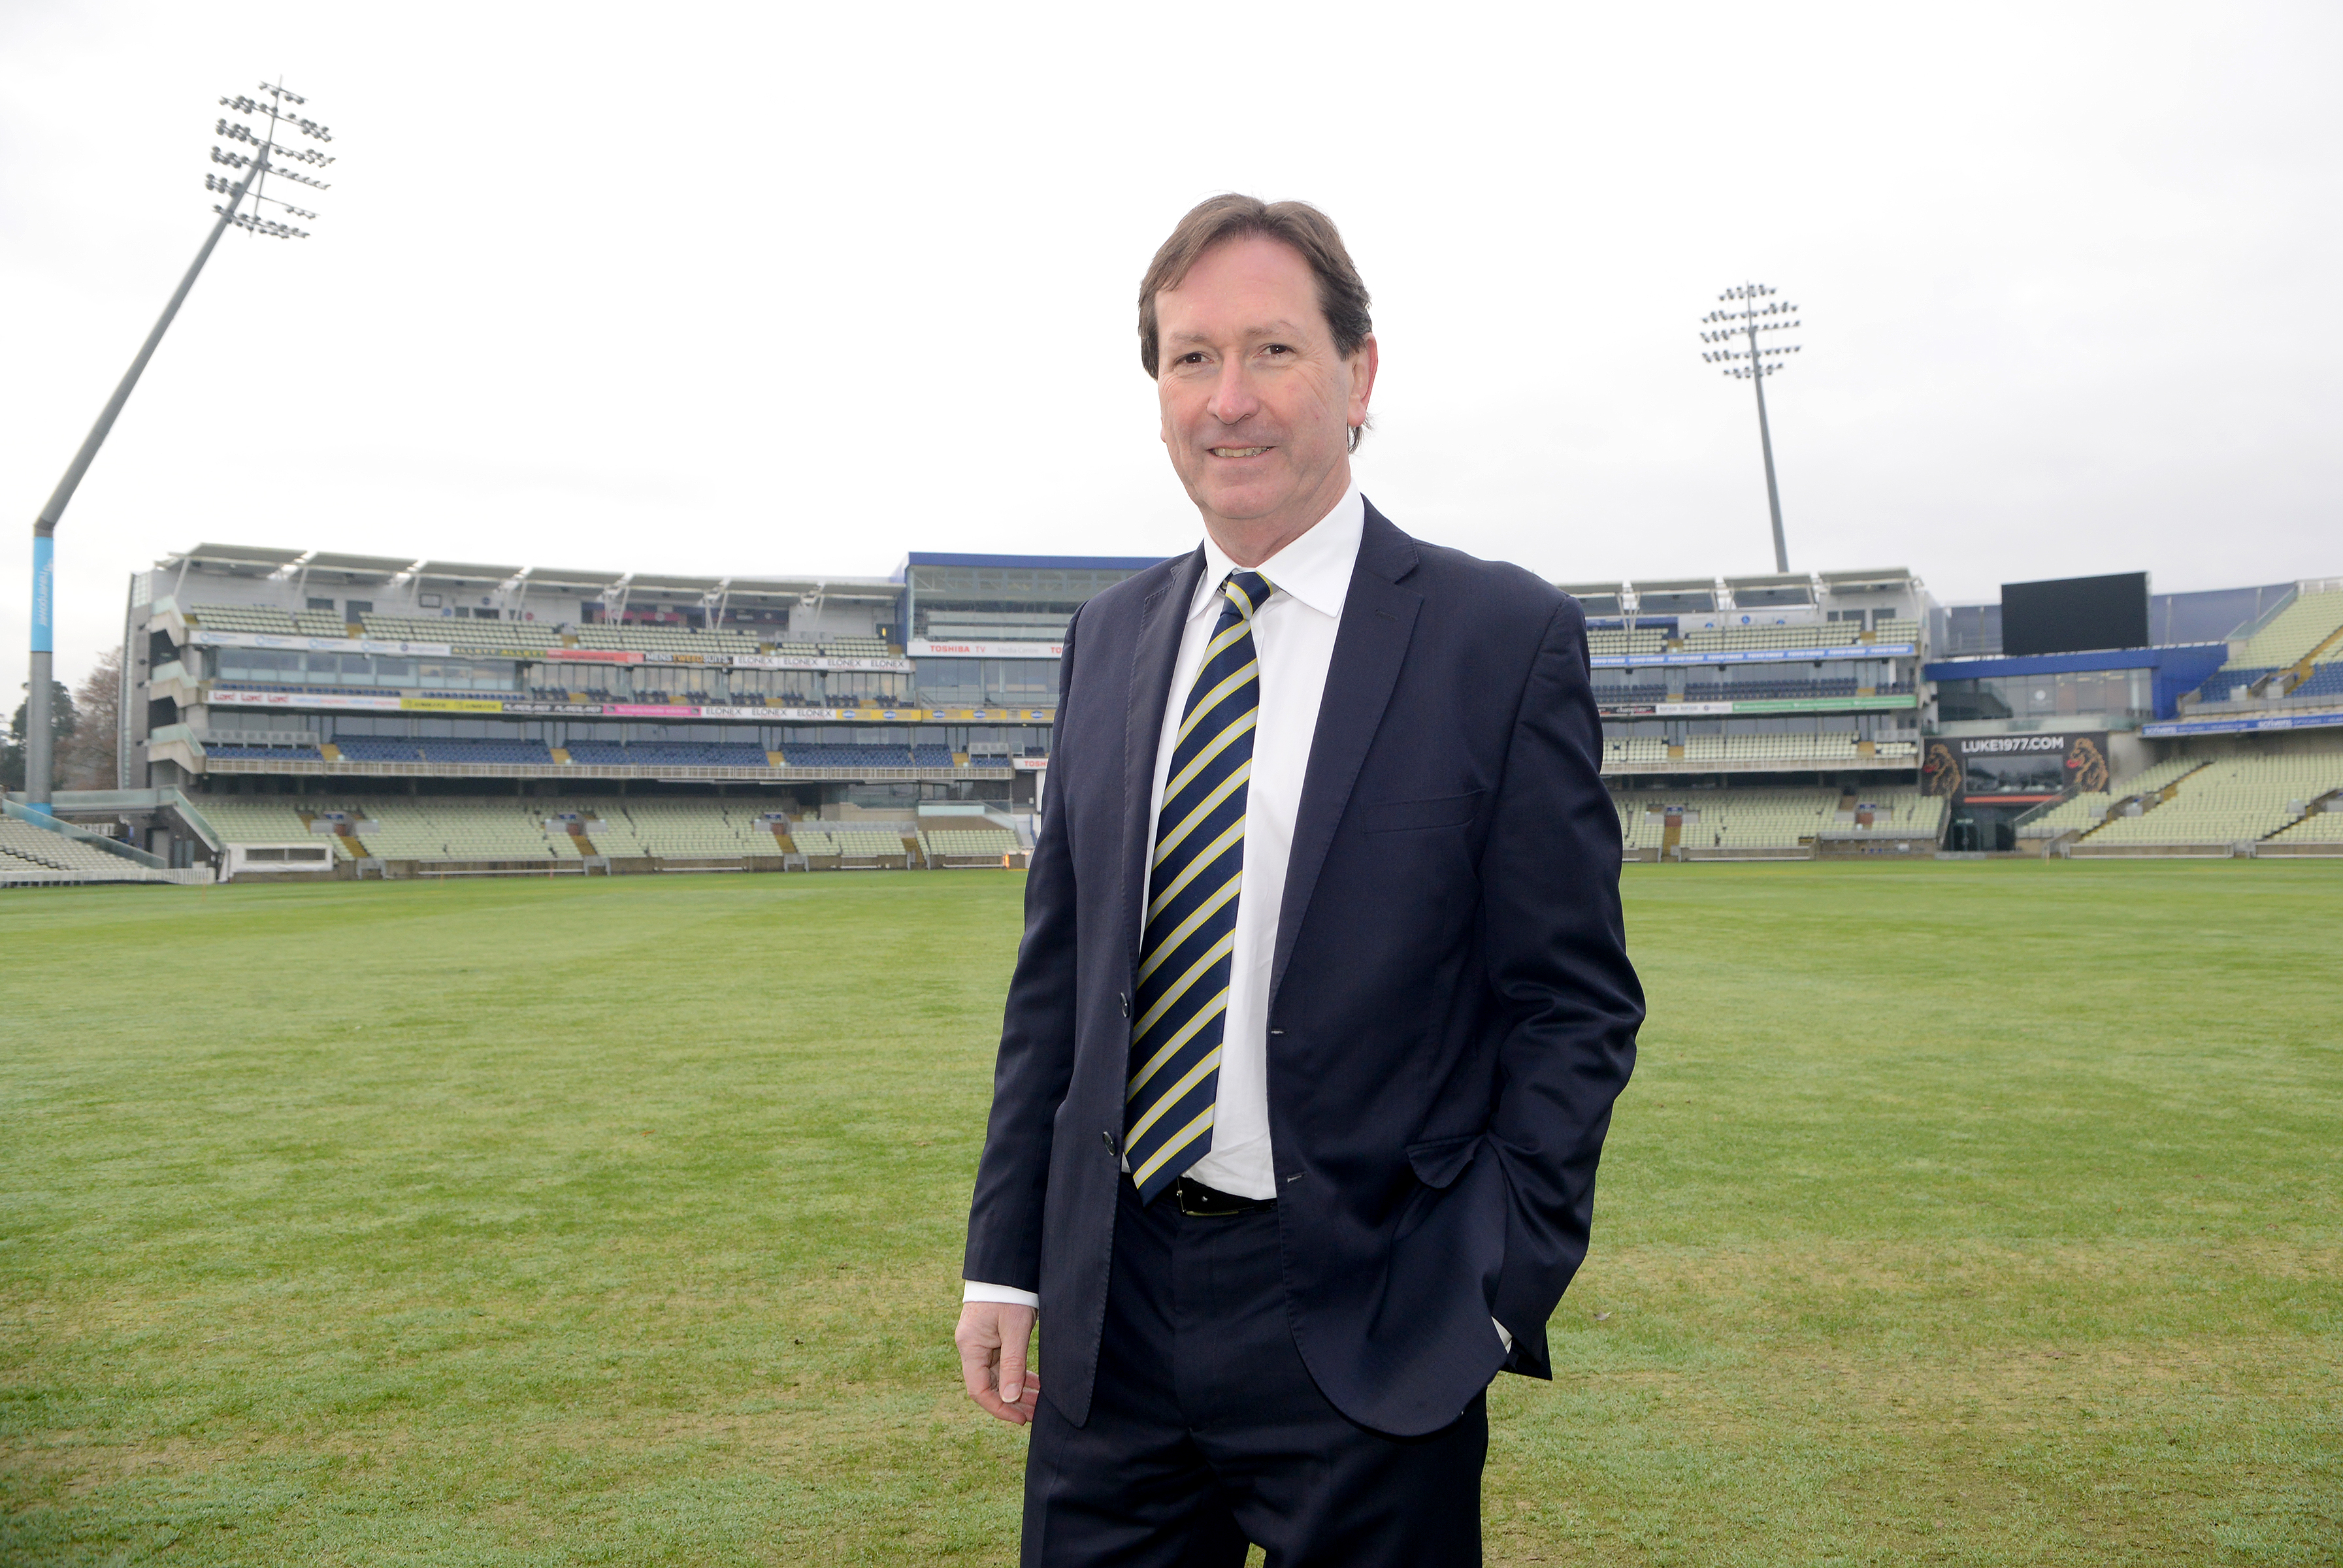 2019-12/1575971000_warwickshire-country-cricket-club-chairman